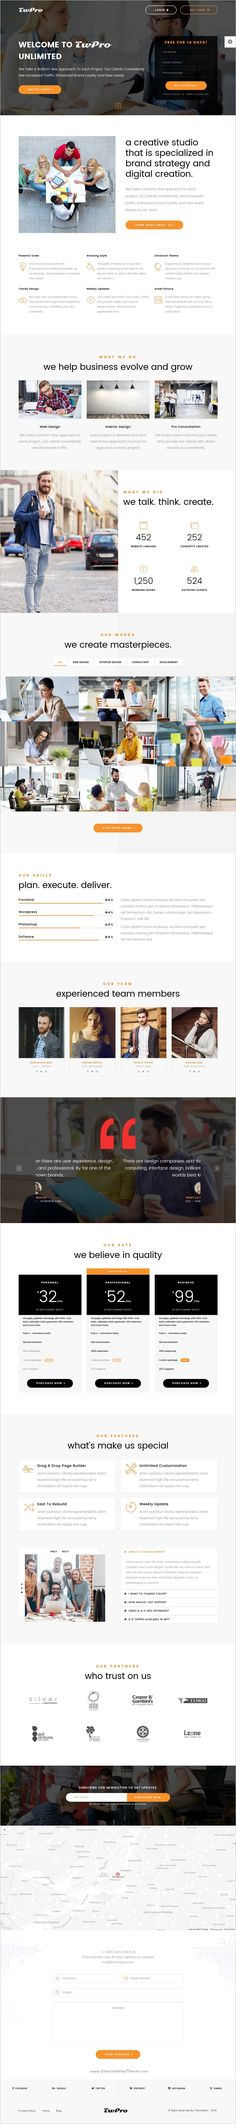 TwPro is a modern, creative and unique responsive 3in1 HTML5 #bootstrap template for #startups #landing page website download now➩ https://themeforest.net/item/gopro-startup-landing-page/18946385?ref=Datasata